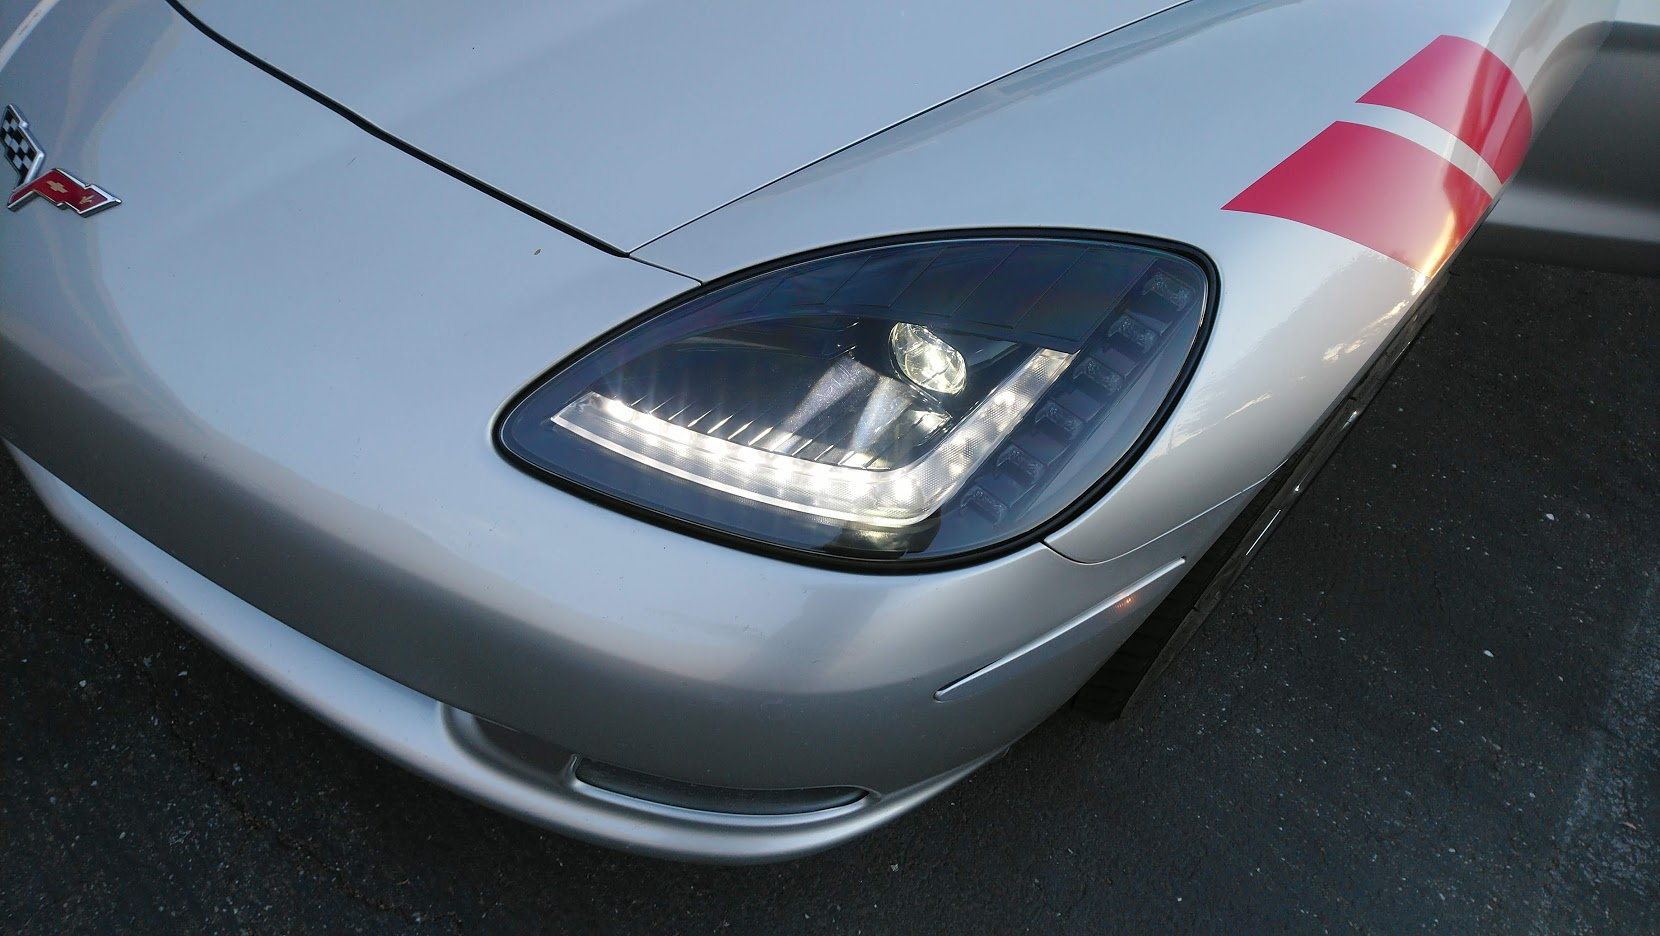 Zen6 C6 Full Bi Led Replacement Headlights C7 Style From Umnitza Headlight Wiring Harness The Assemble Is A Direct Swap They Seem It Fit Well